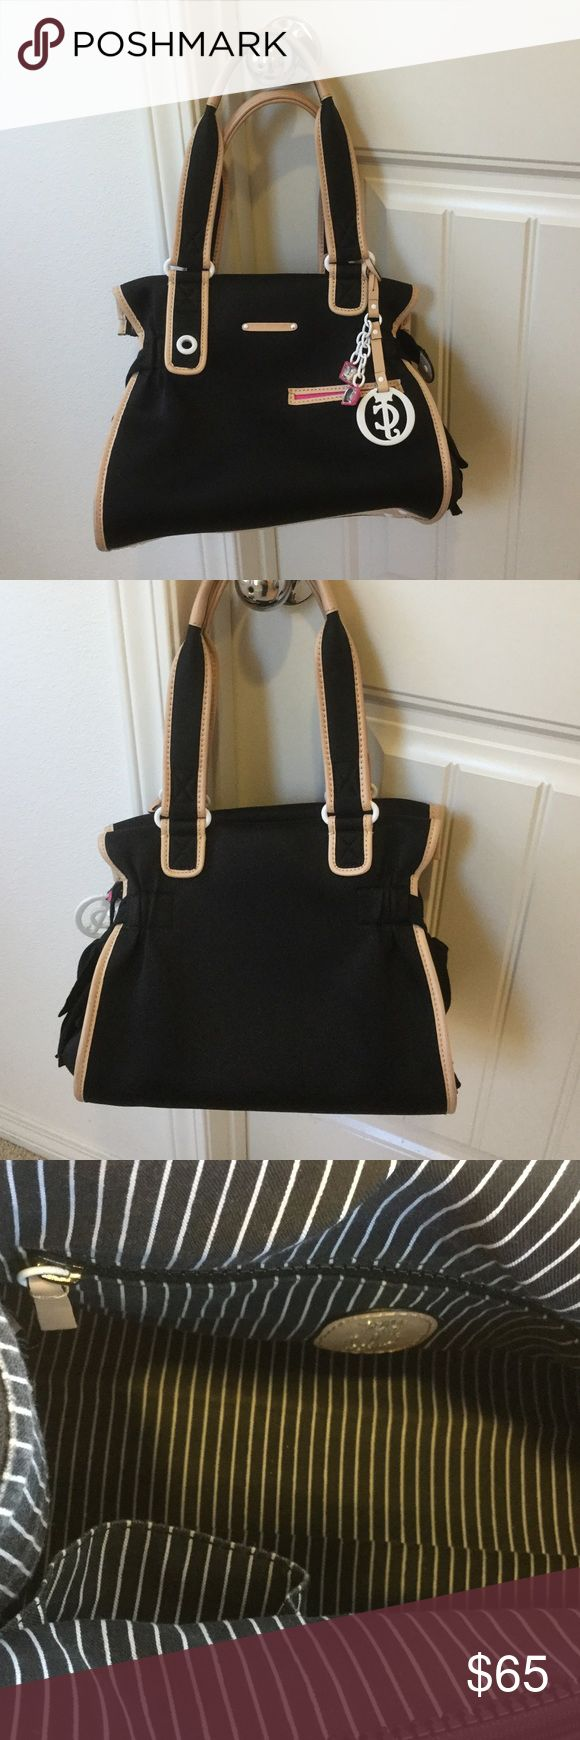 """Juicy Couture nylon handbag Black nylon Juicy Couture handbag. One exterior pocket hidden by a grograin ribbon on each side with one pocket on front panel. One zippered pocket with two open pockets on the interior. H: 11.5"""". L: 13"""". W: 9"""". Miniscule imperfections shown. Juicy Couture Bags Satchels"""